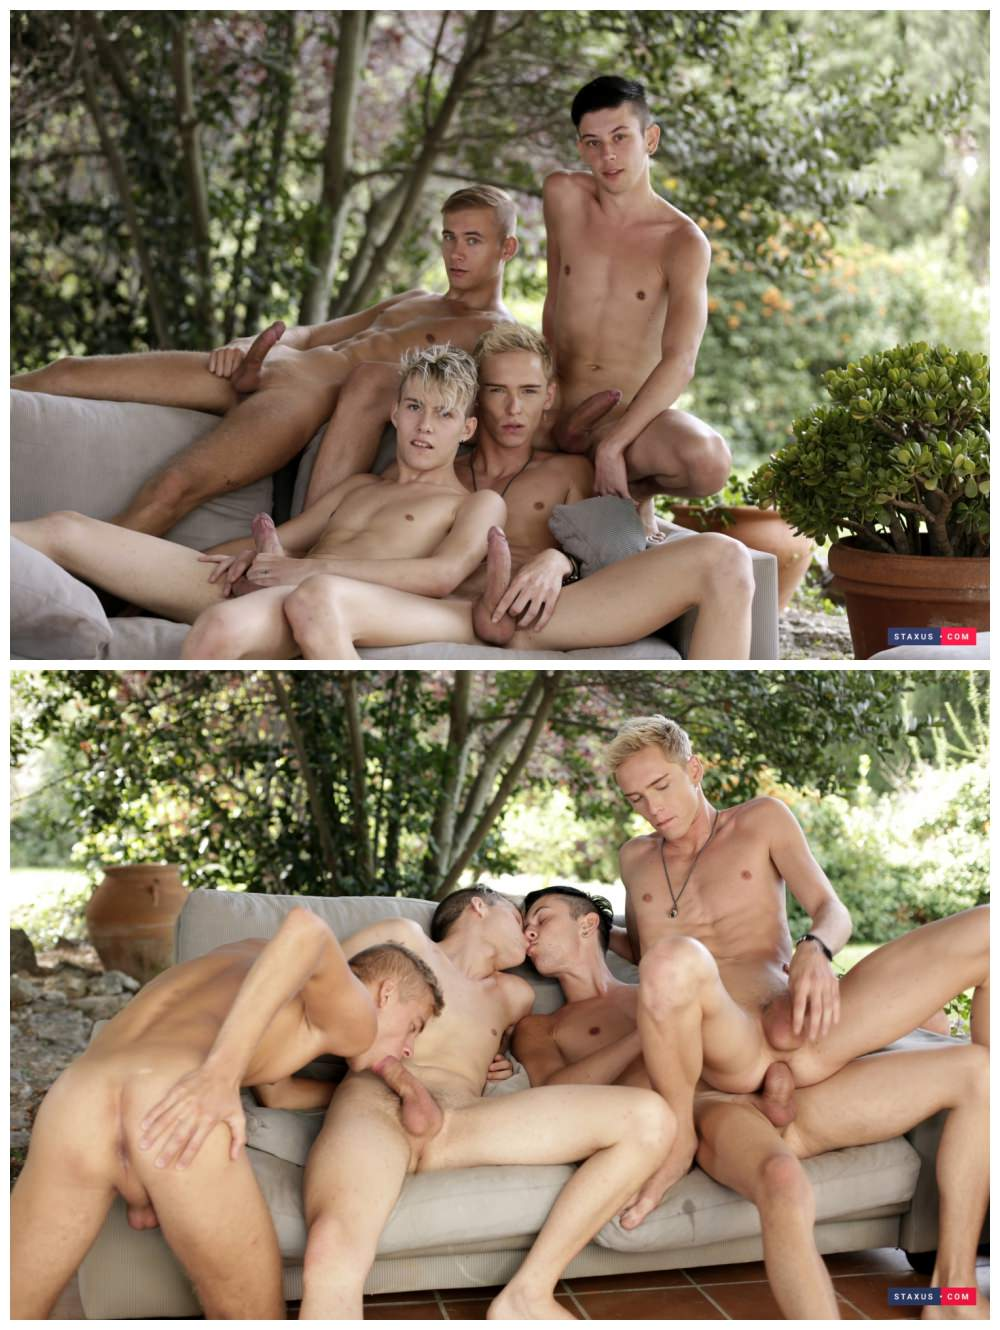 image Group gay uncut cock sex mpg these boys are